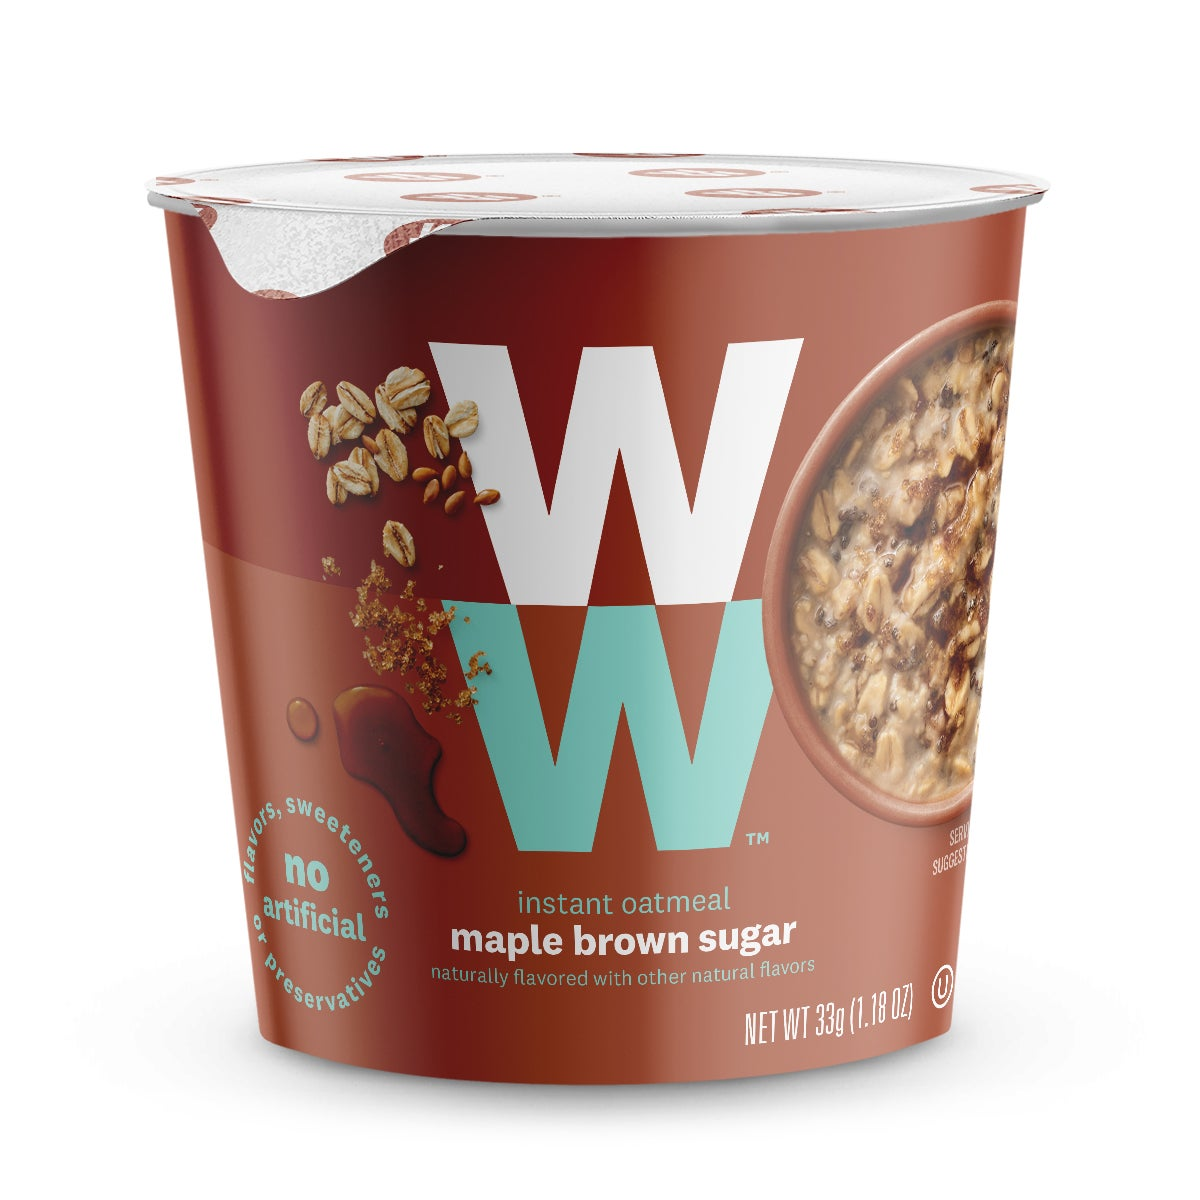 Maple Brown Sugar Oatmeal - front of cup